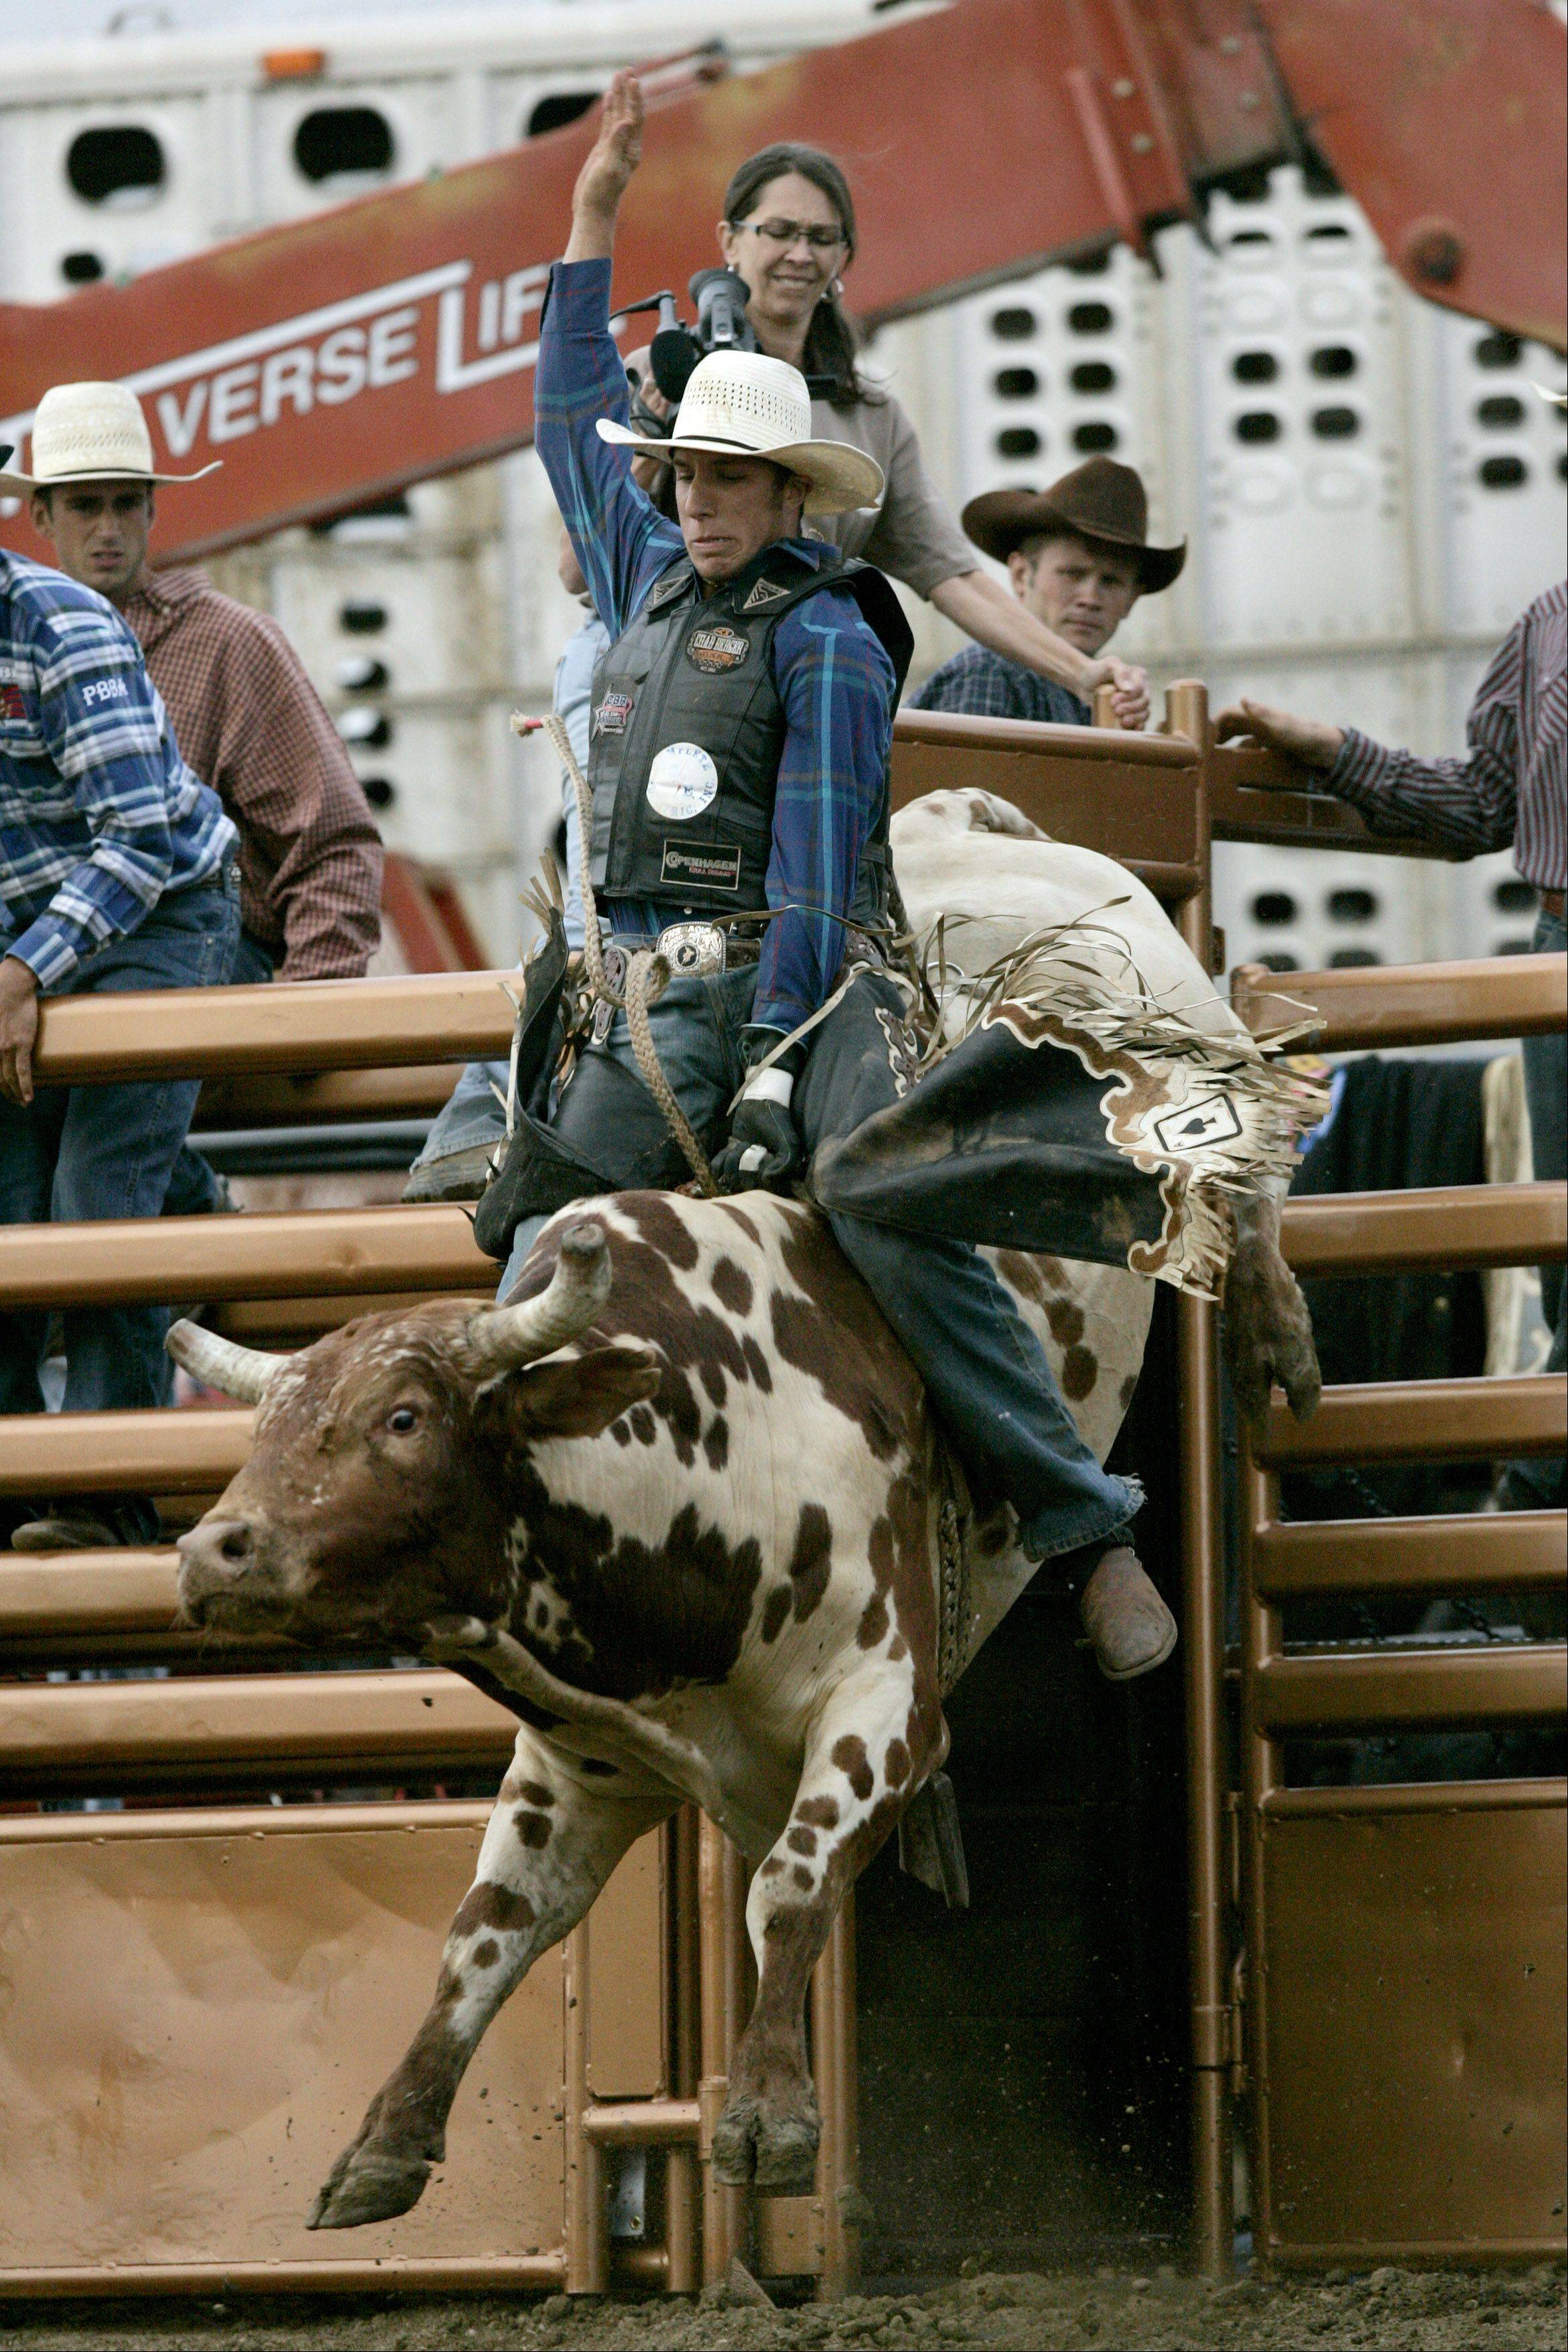 Based on the popularity of bull riding, the Kane County Fair has added additional shows this year.